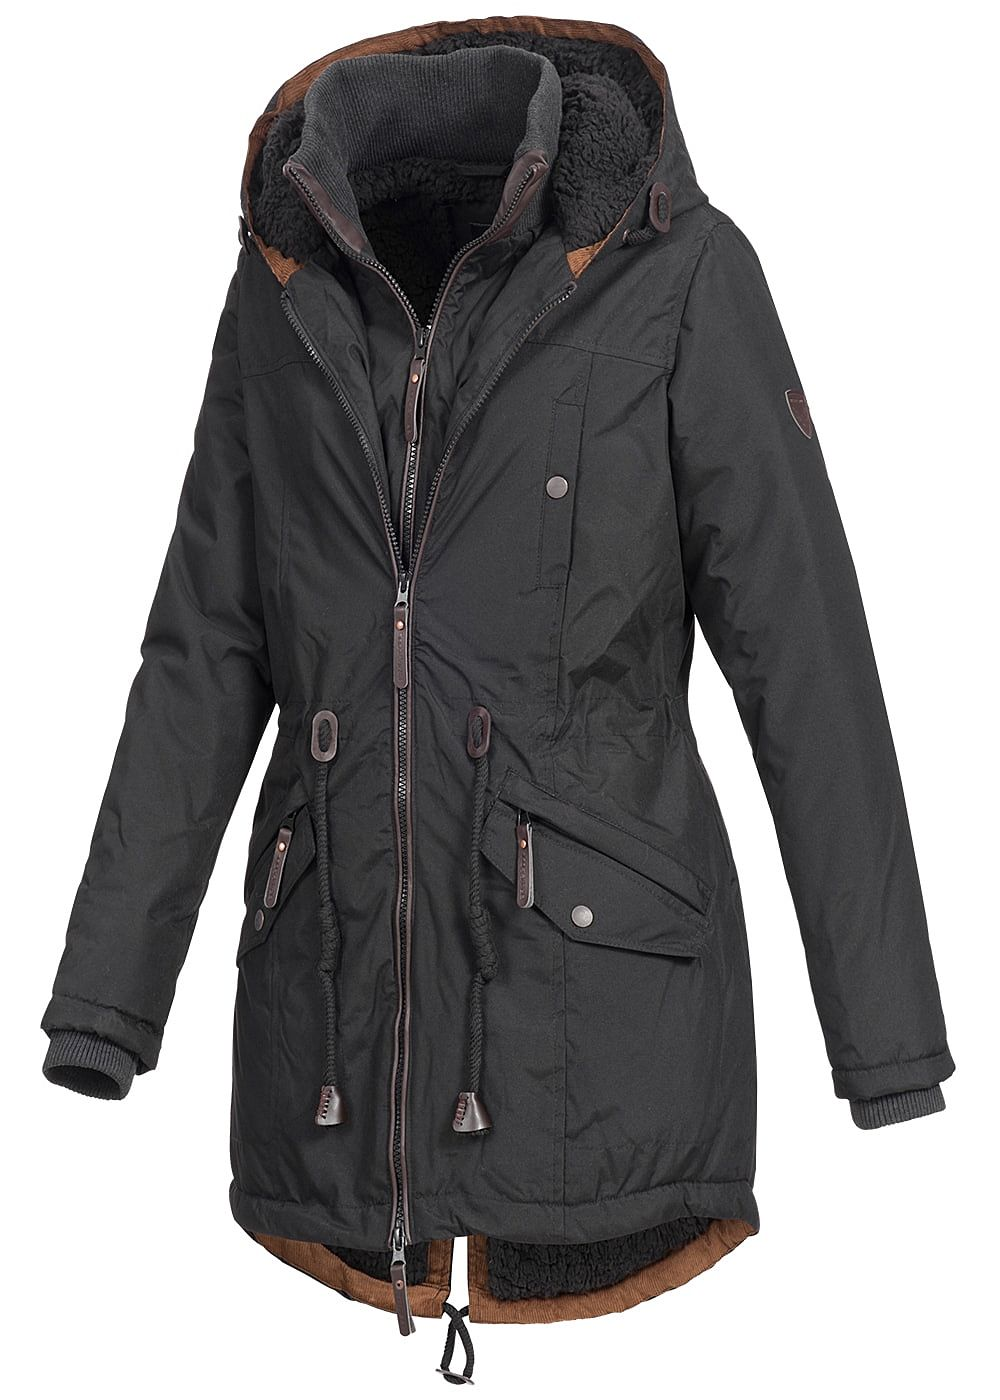 seventyseven lifestyle damen winter parka 2 rv teddyfell kapuze 5 pockets schwarz braun. Black Bedroom Furniture Sets. Home Design Ideas